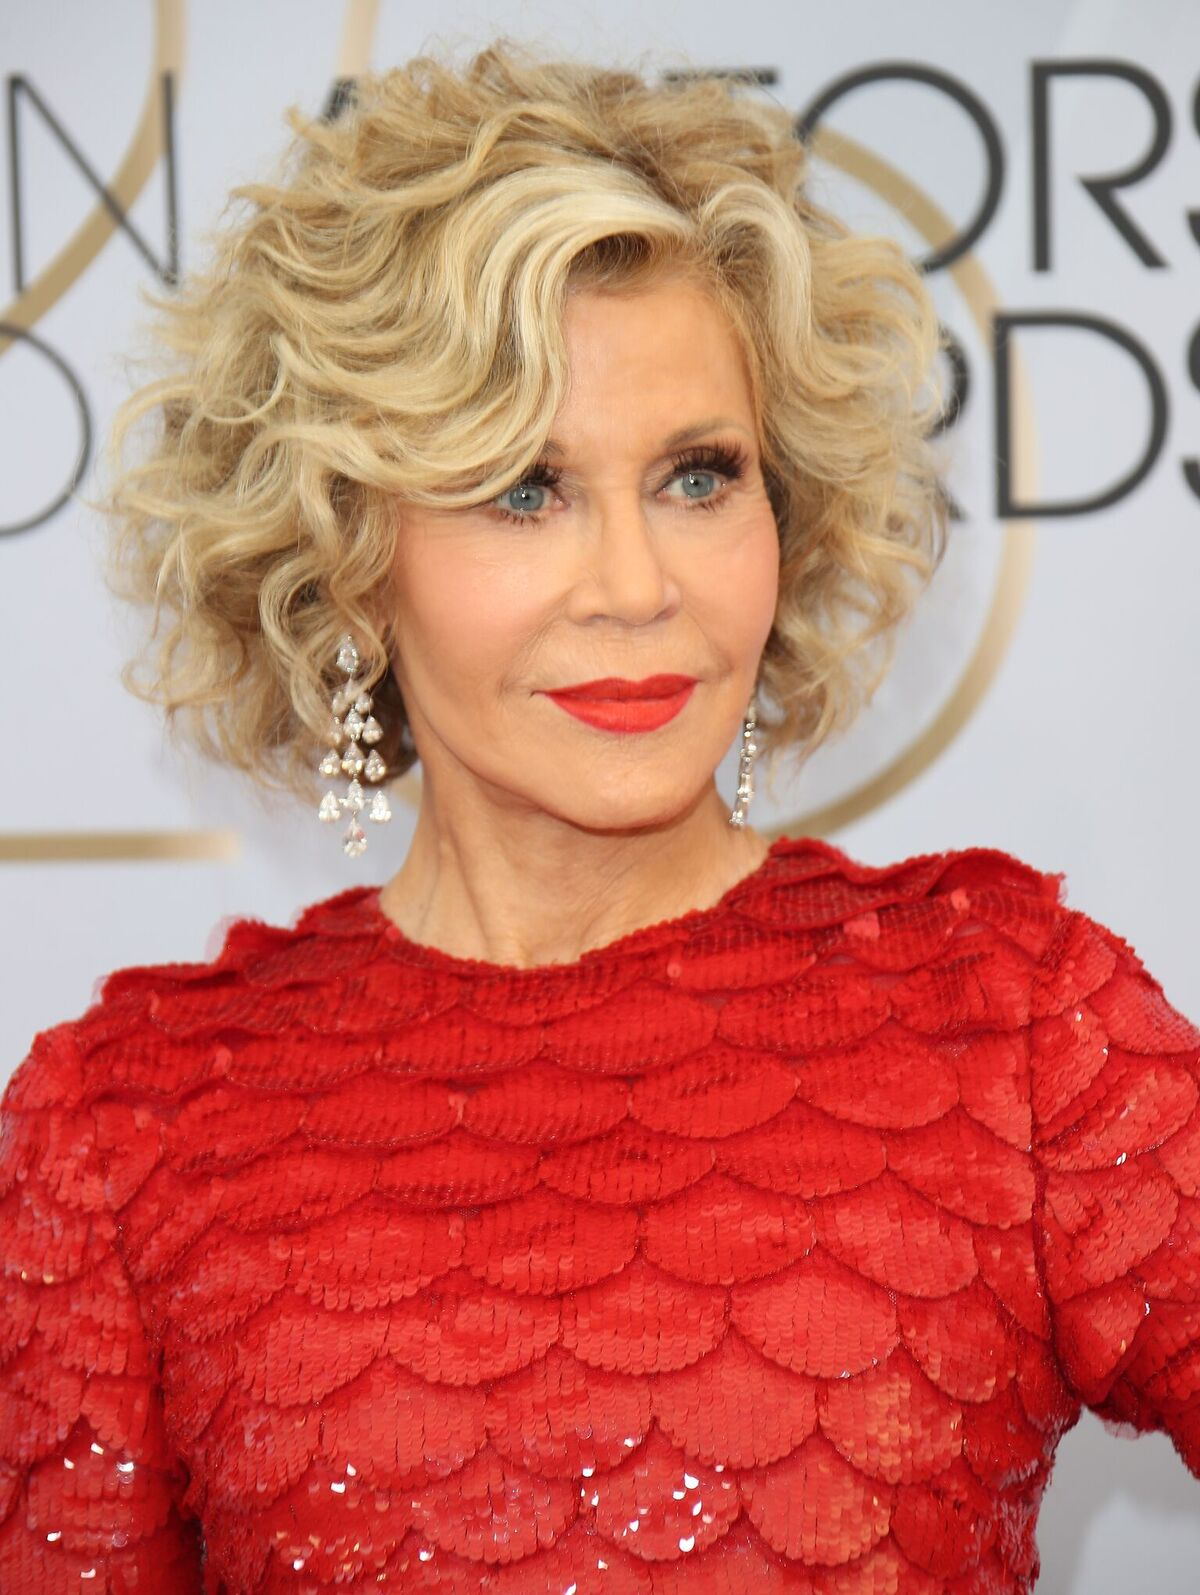 Jane Fonda attends the 25th Annual Screen Actors Guild Awards at The Shrine Auditorium on January 27, 2019 | Photo: Getty Images